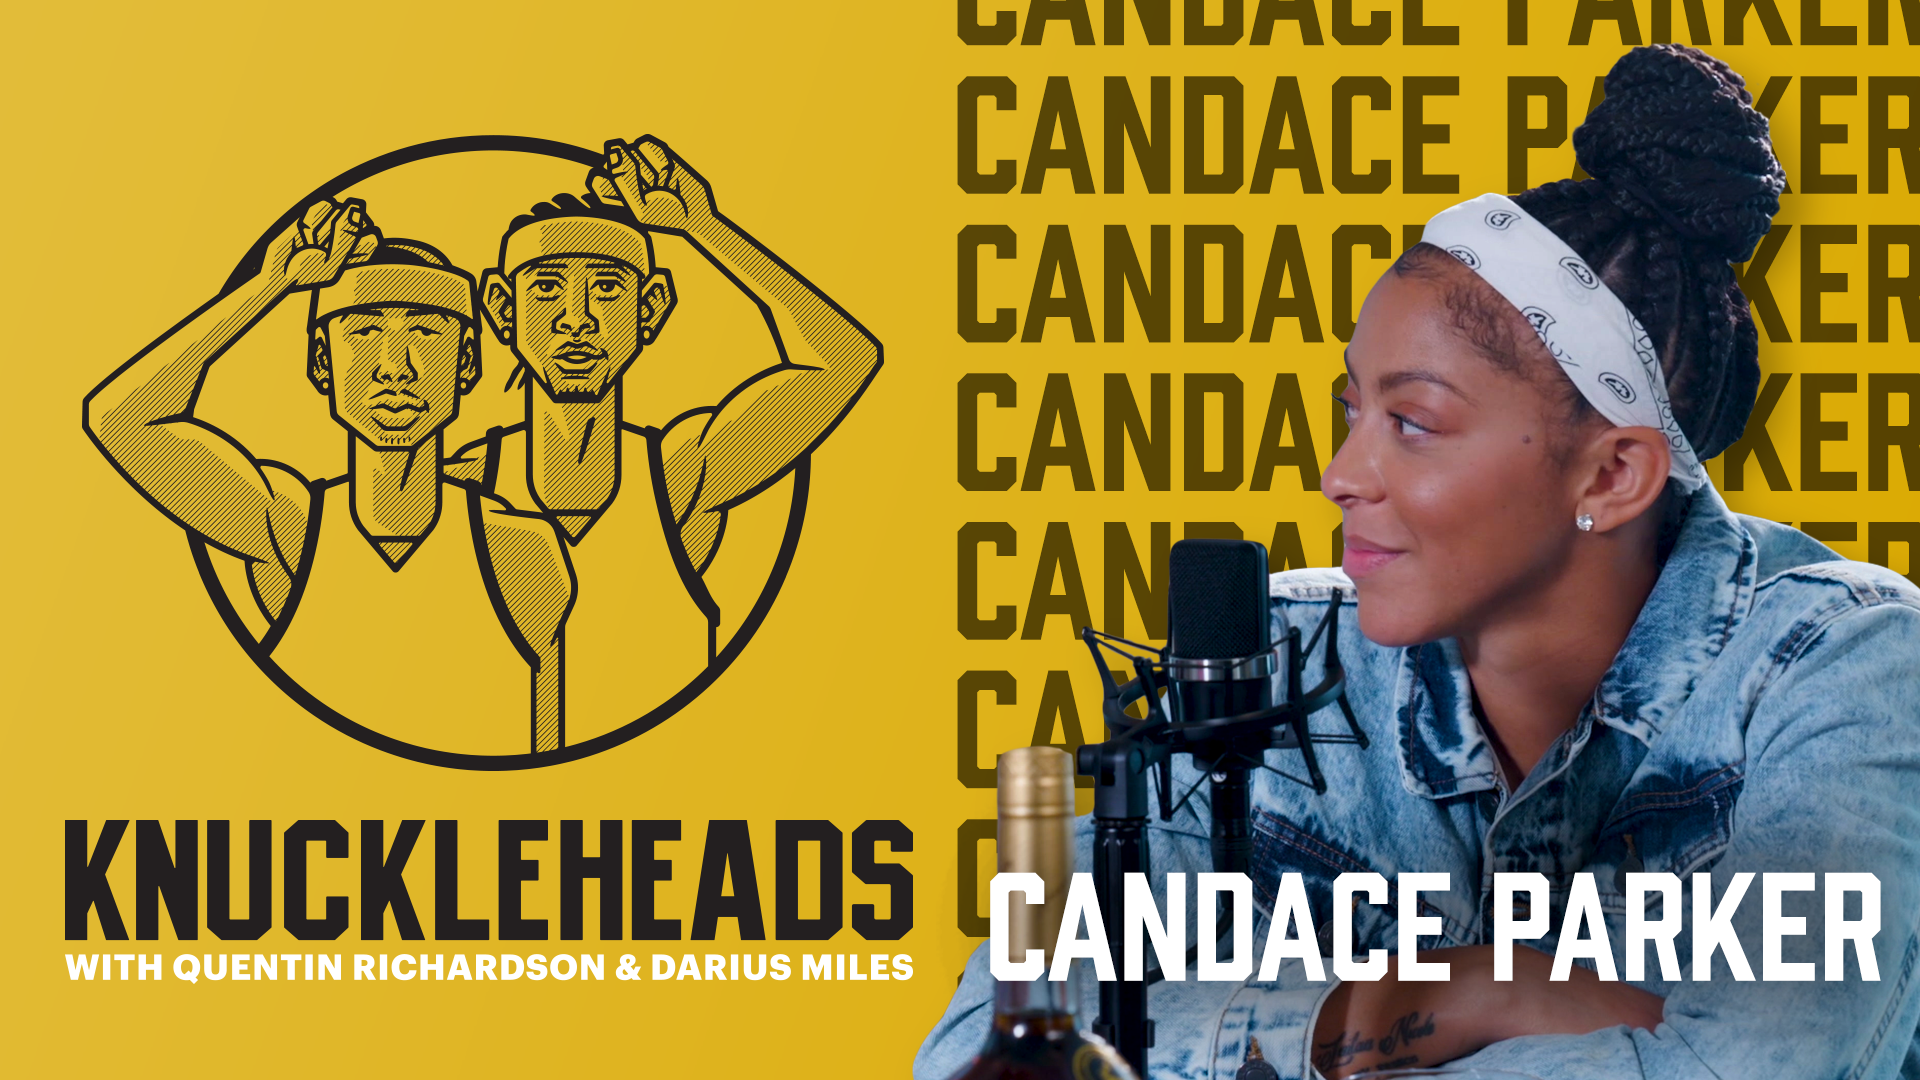 Posted Up with Candace Parker | Knuckleheads